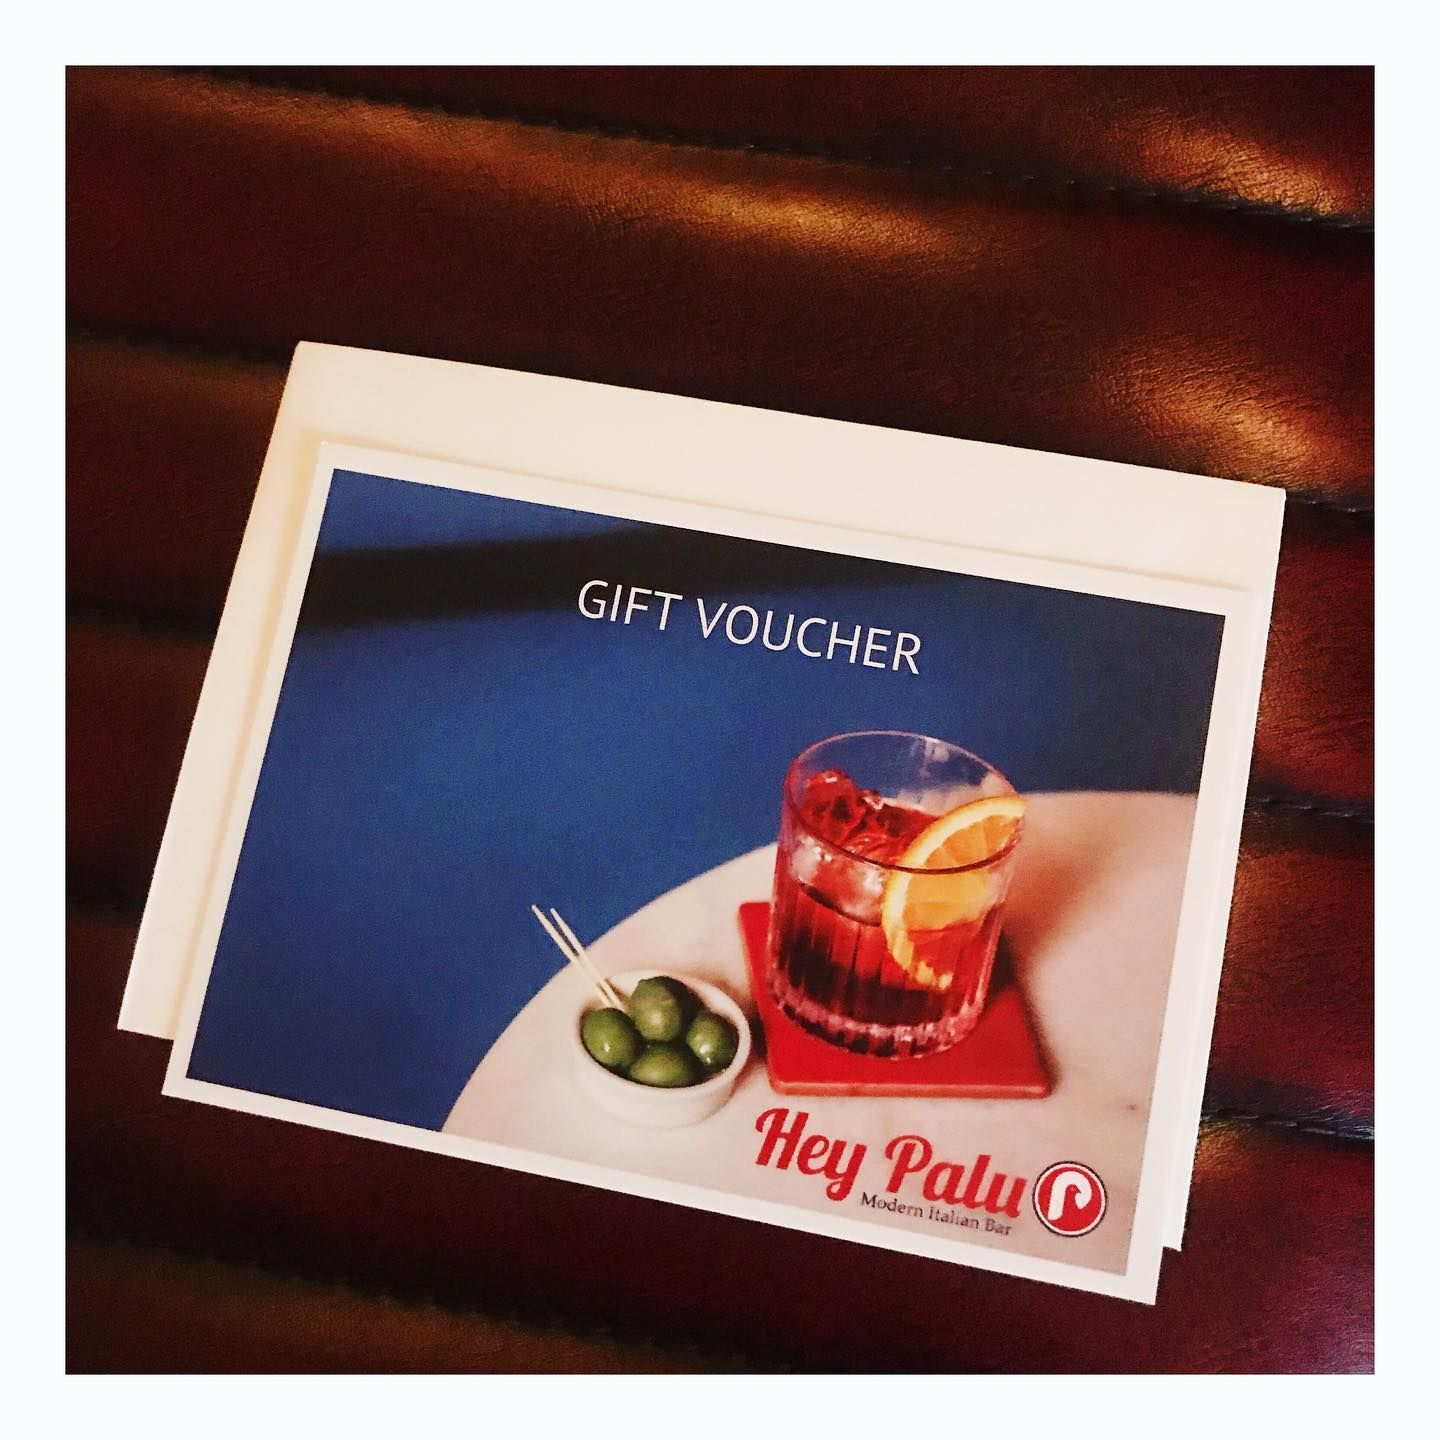 Also now selling gift vouchers 🍷🥂🍹🍸 #gifted #bestxmaspresent #cocktaillovers . . . . . . #heypalu 👋🐦🍸 #modernitalianbar  #edinburghbloggers #edinburghlife #edinburghstory #edinburghhighlights #thediscoverer #cocktailsbars #cocktailblog #cocktailbloggers #cocktailhour  #aperitivo #hiddenedinburgh